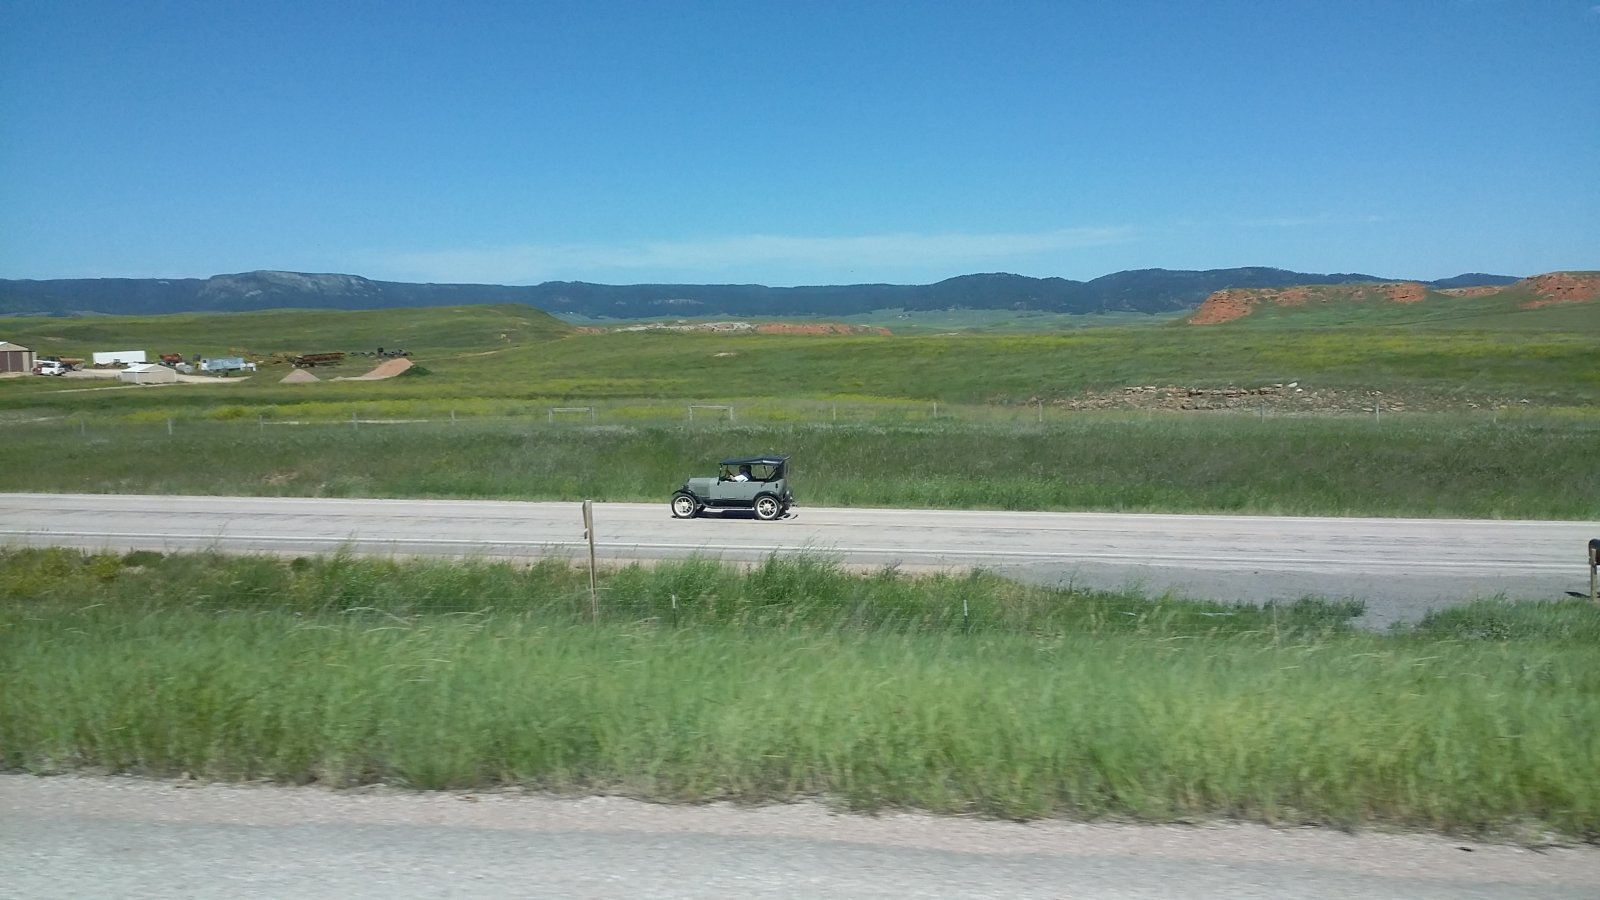 Click image for larger version  Name:Going to Buffalo, Wyoming.jpg Views:37 Size:196.4 KB ID:244308